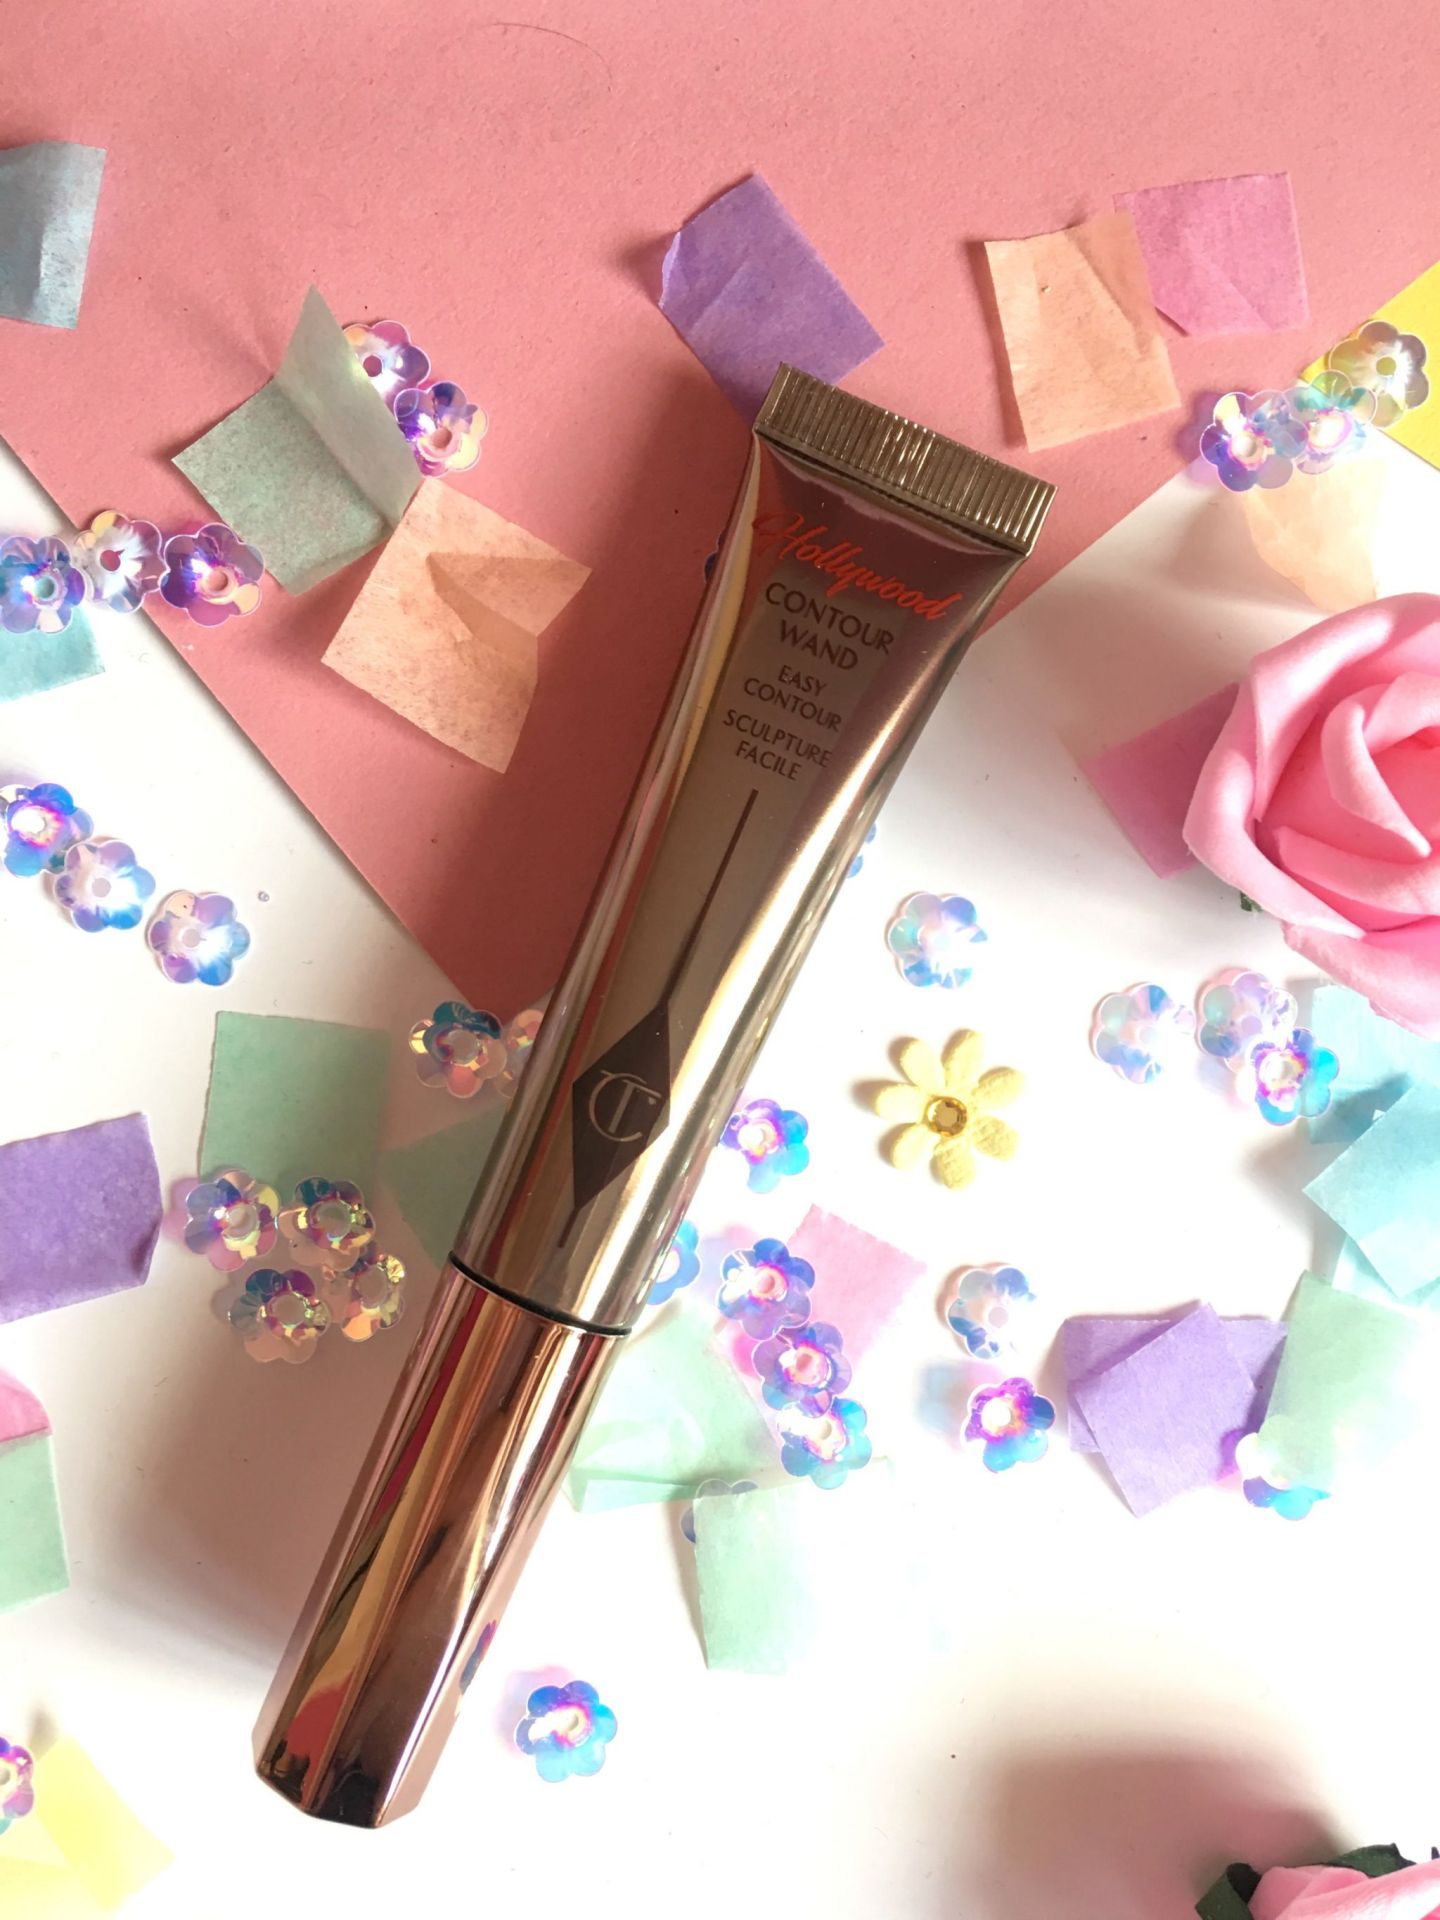 Charlotte Tilbury Hollywood Beauty Wands Musings of a Makeup Junkie (6)